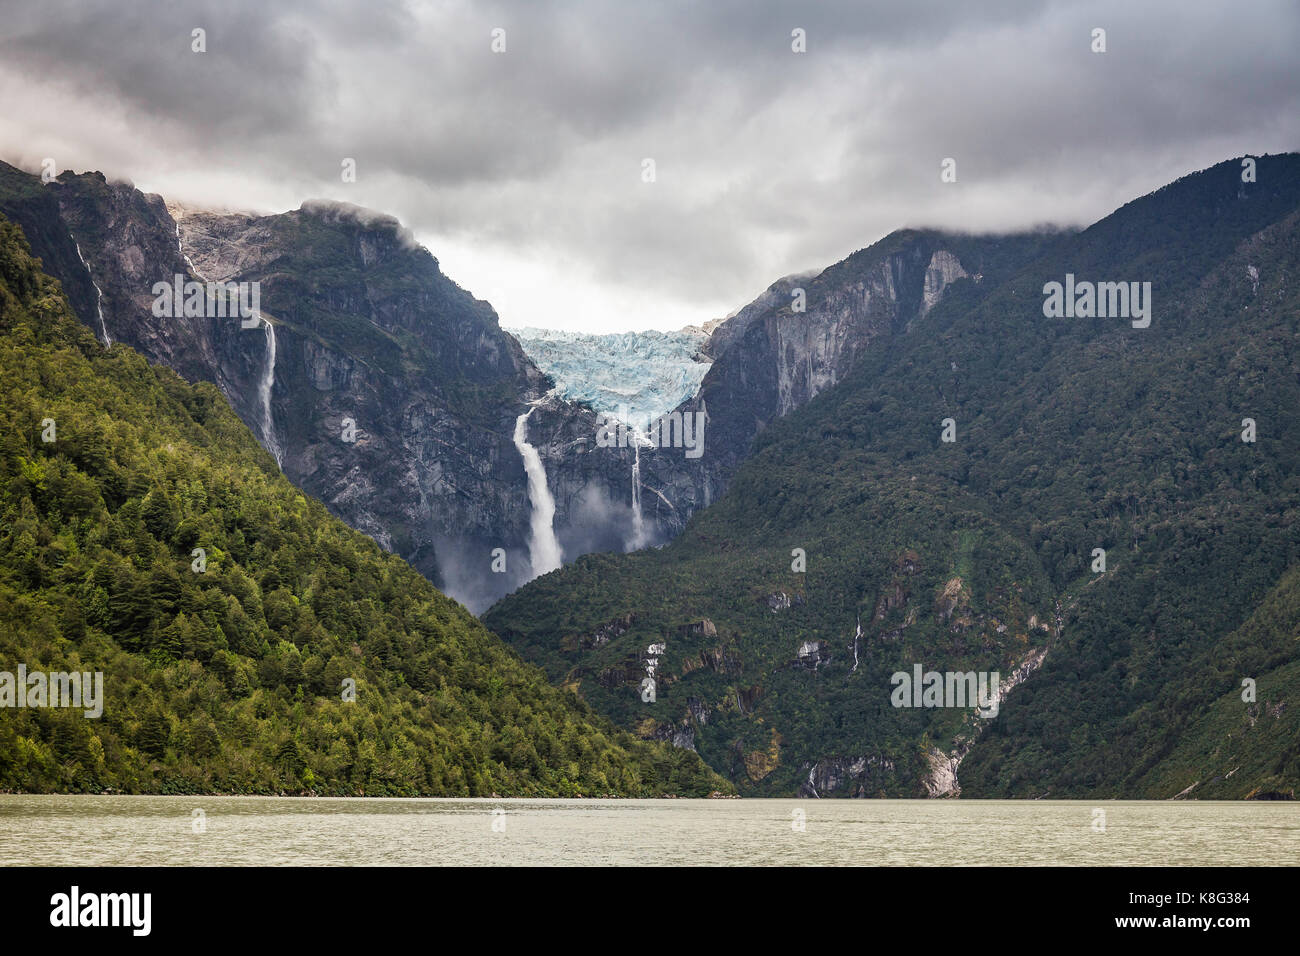 Waterfall flowing from glacier at edge of mountain rock face, Queulat National Park, Chile - Stock Image